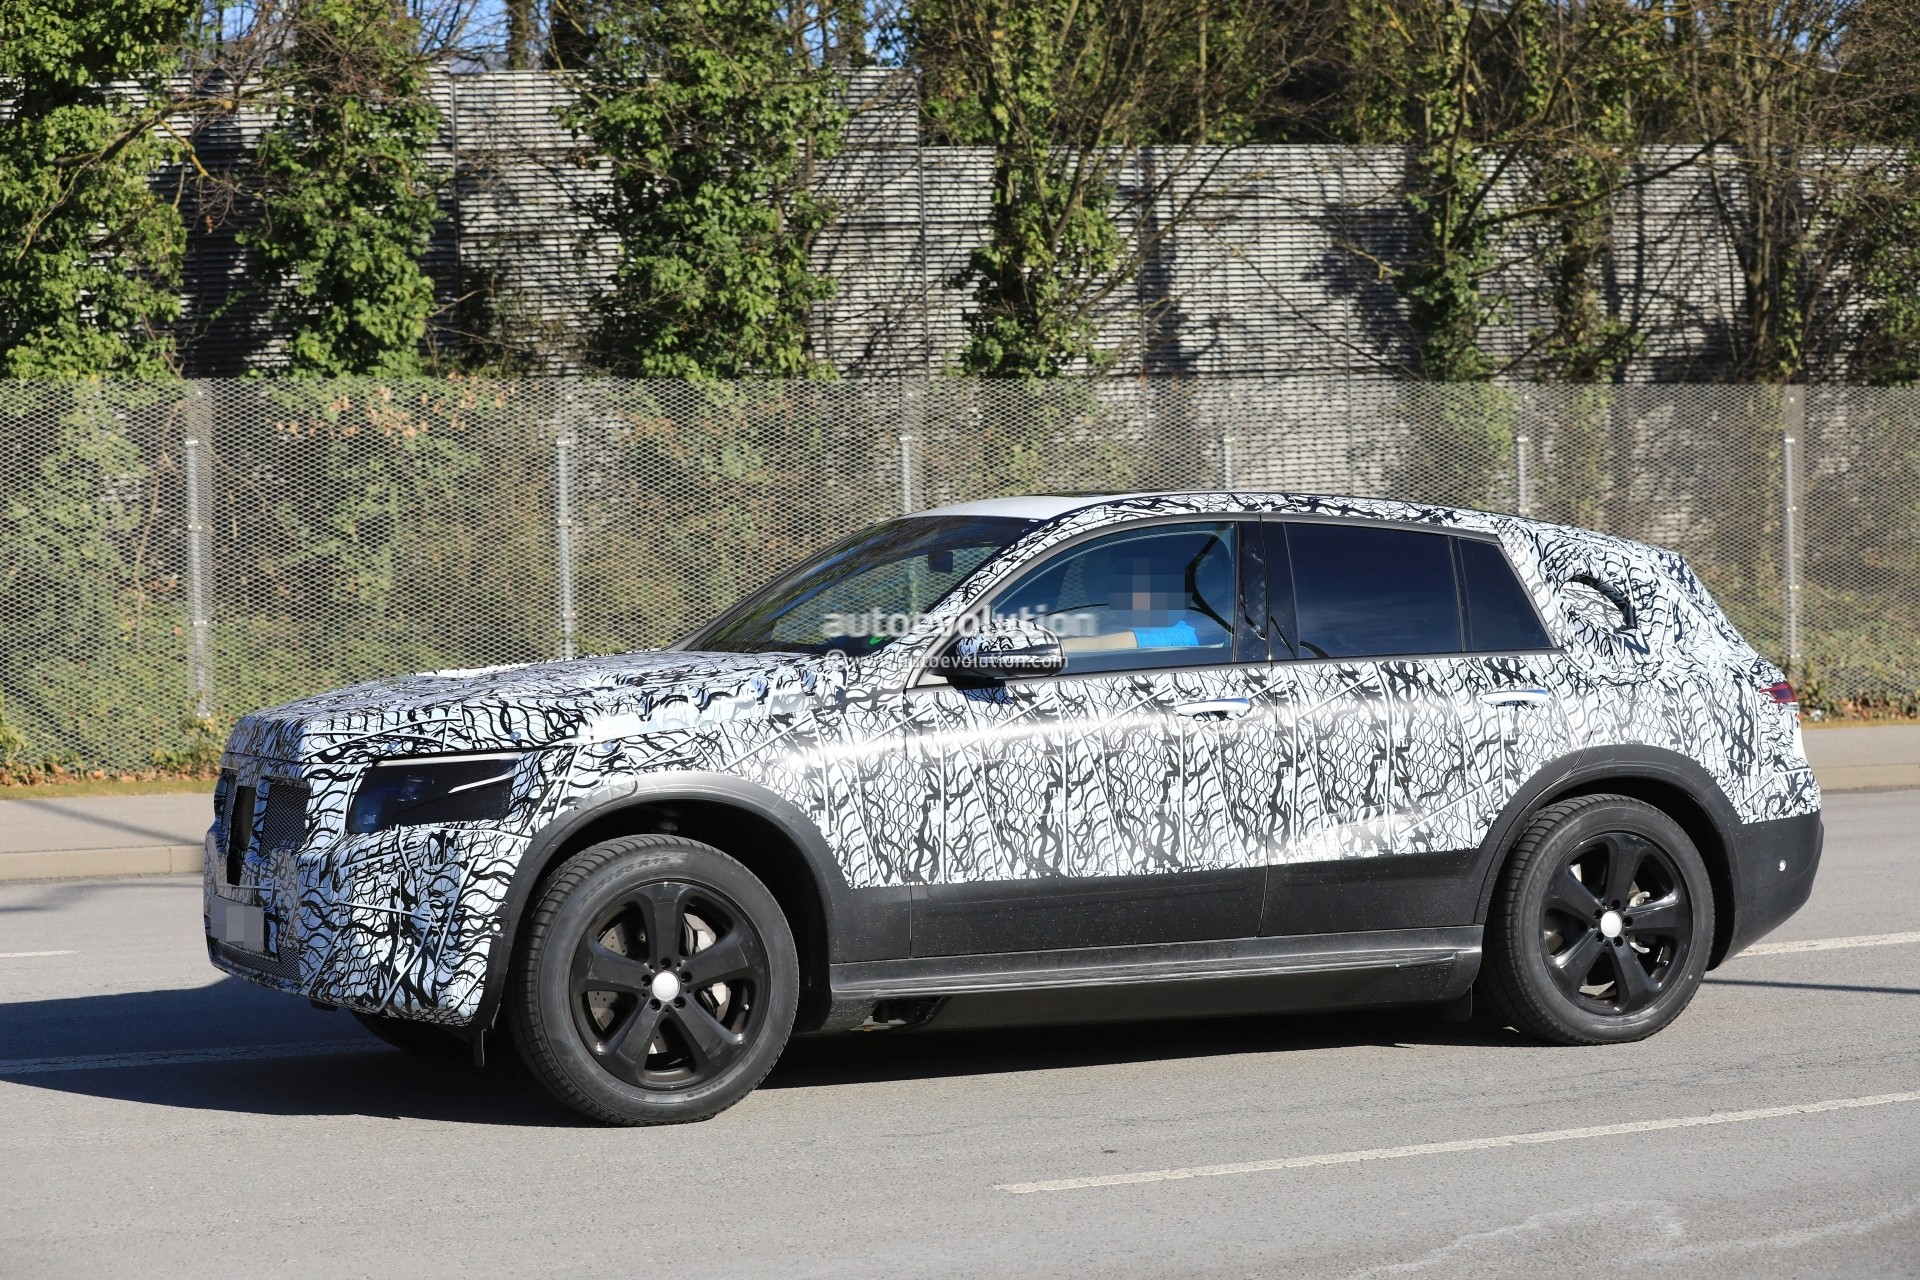 Spyshots 2020 Mercedes Benz Eqc Gets Closer To Production